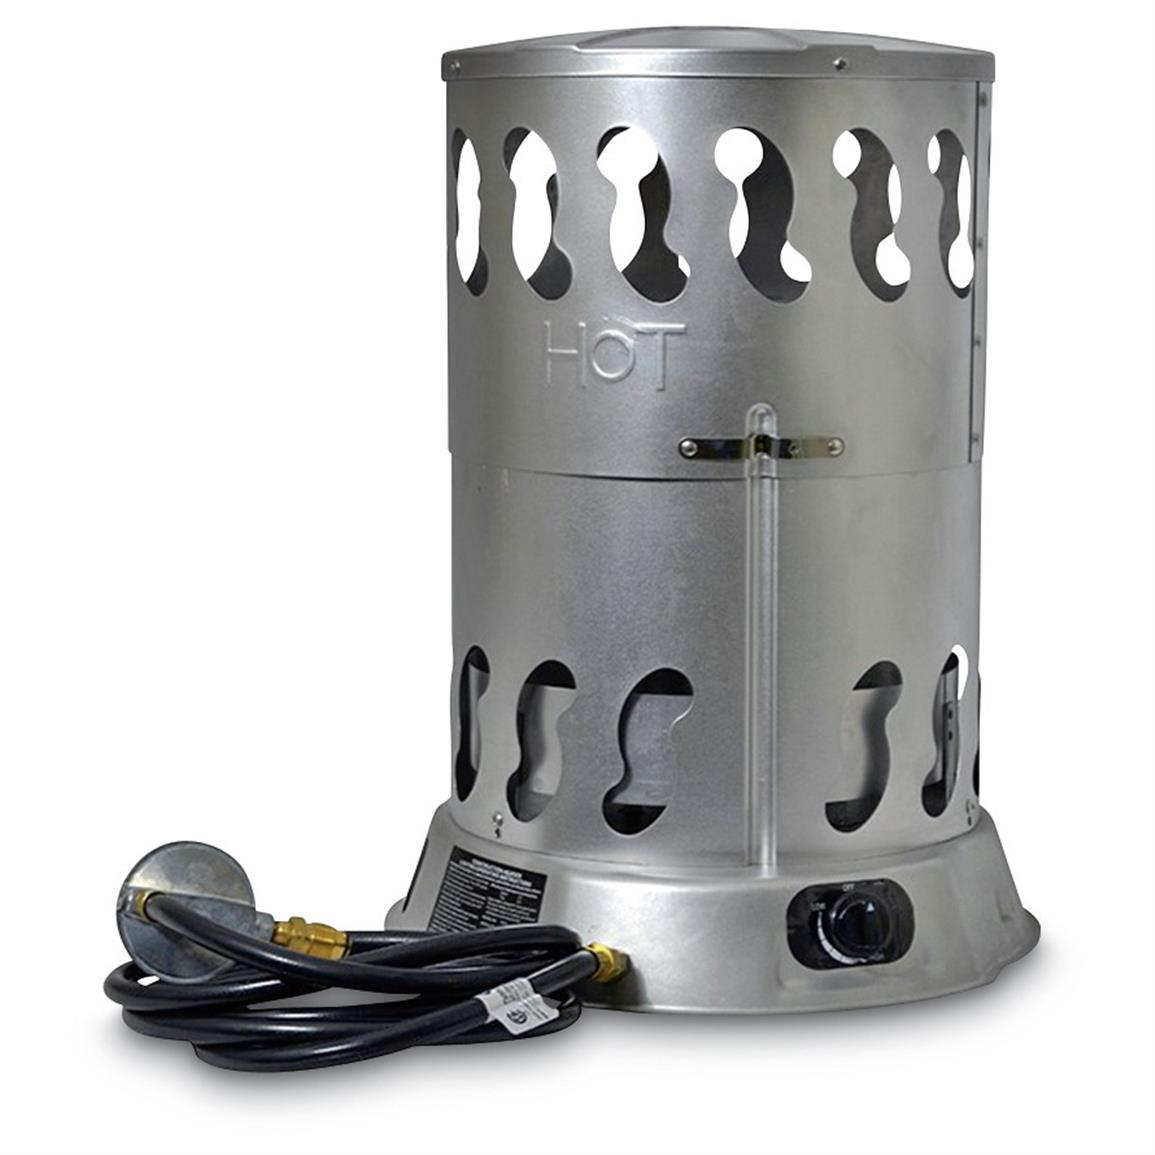 Mr. Heater® Portable Convection Heater